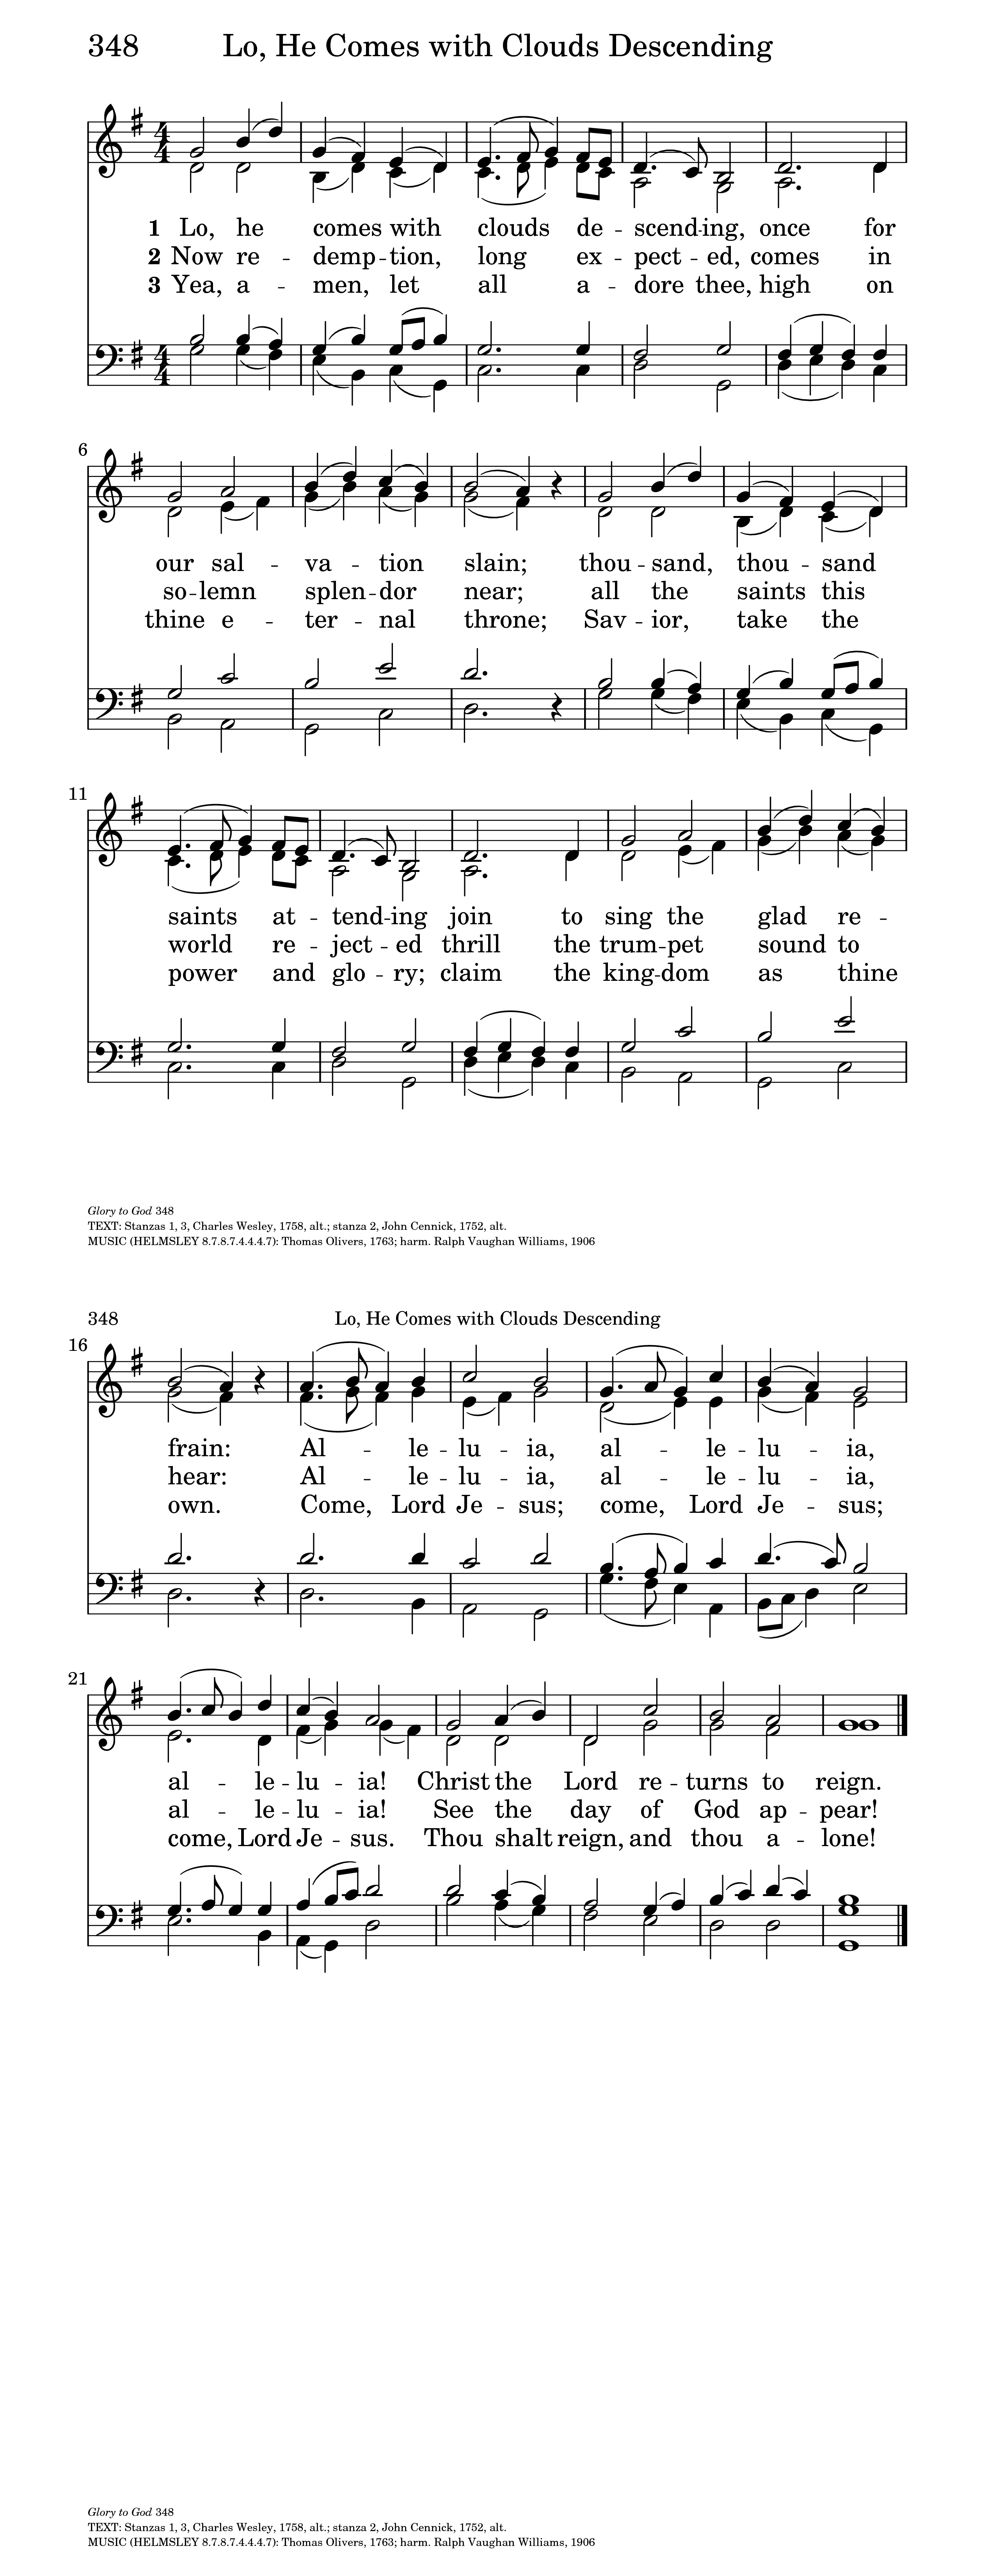 Lo! He Comes with Clouds Descending | Hymnary org